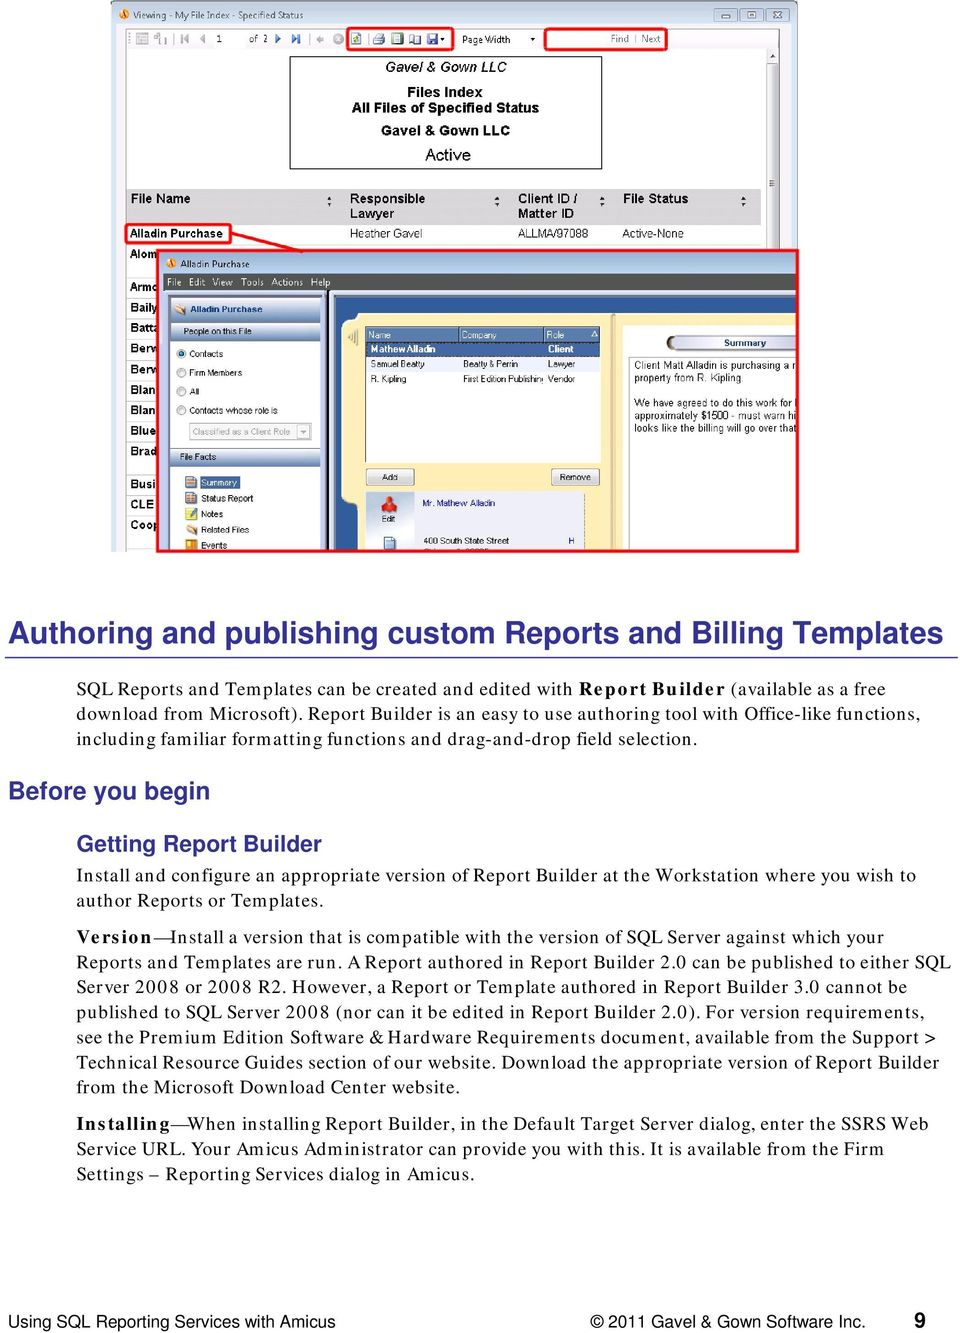 Before you begin Getting Report Builder Install and configure an appropriate version of Report Builder at the Workstation where you wish to author Reports or Templates.